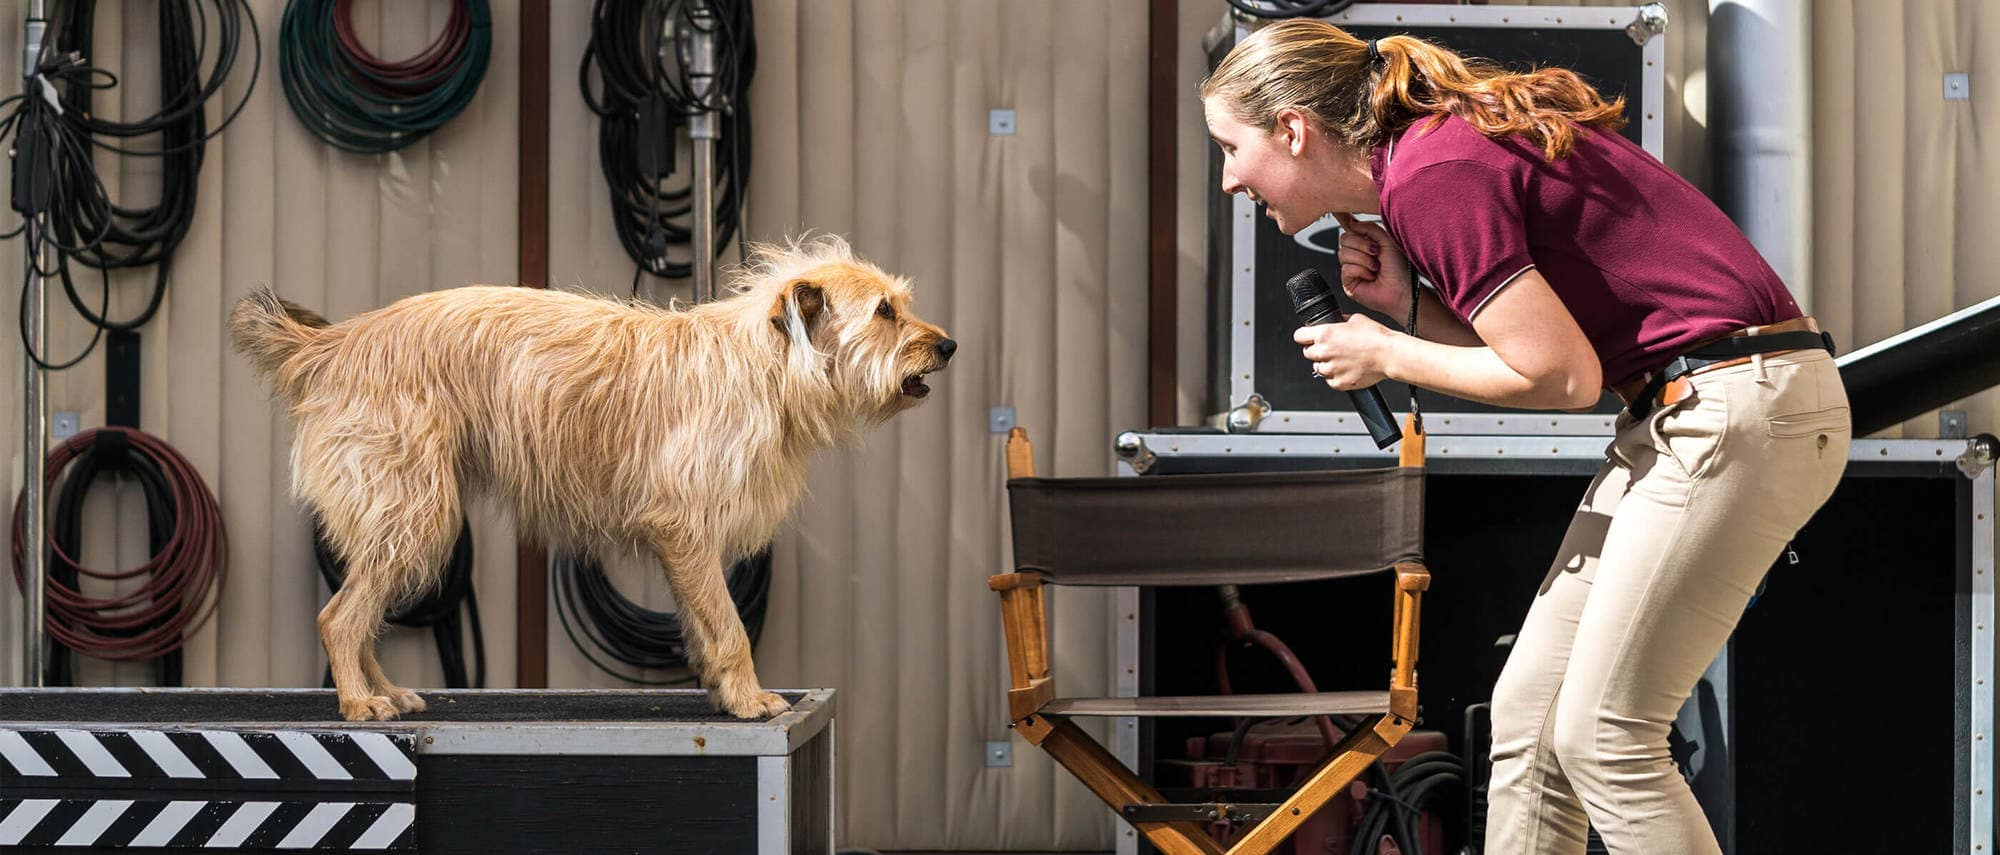 Kids of all ages will enjoy Universal's Animal Actors show